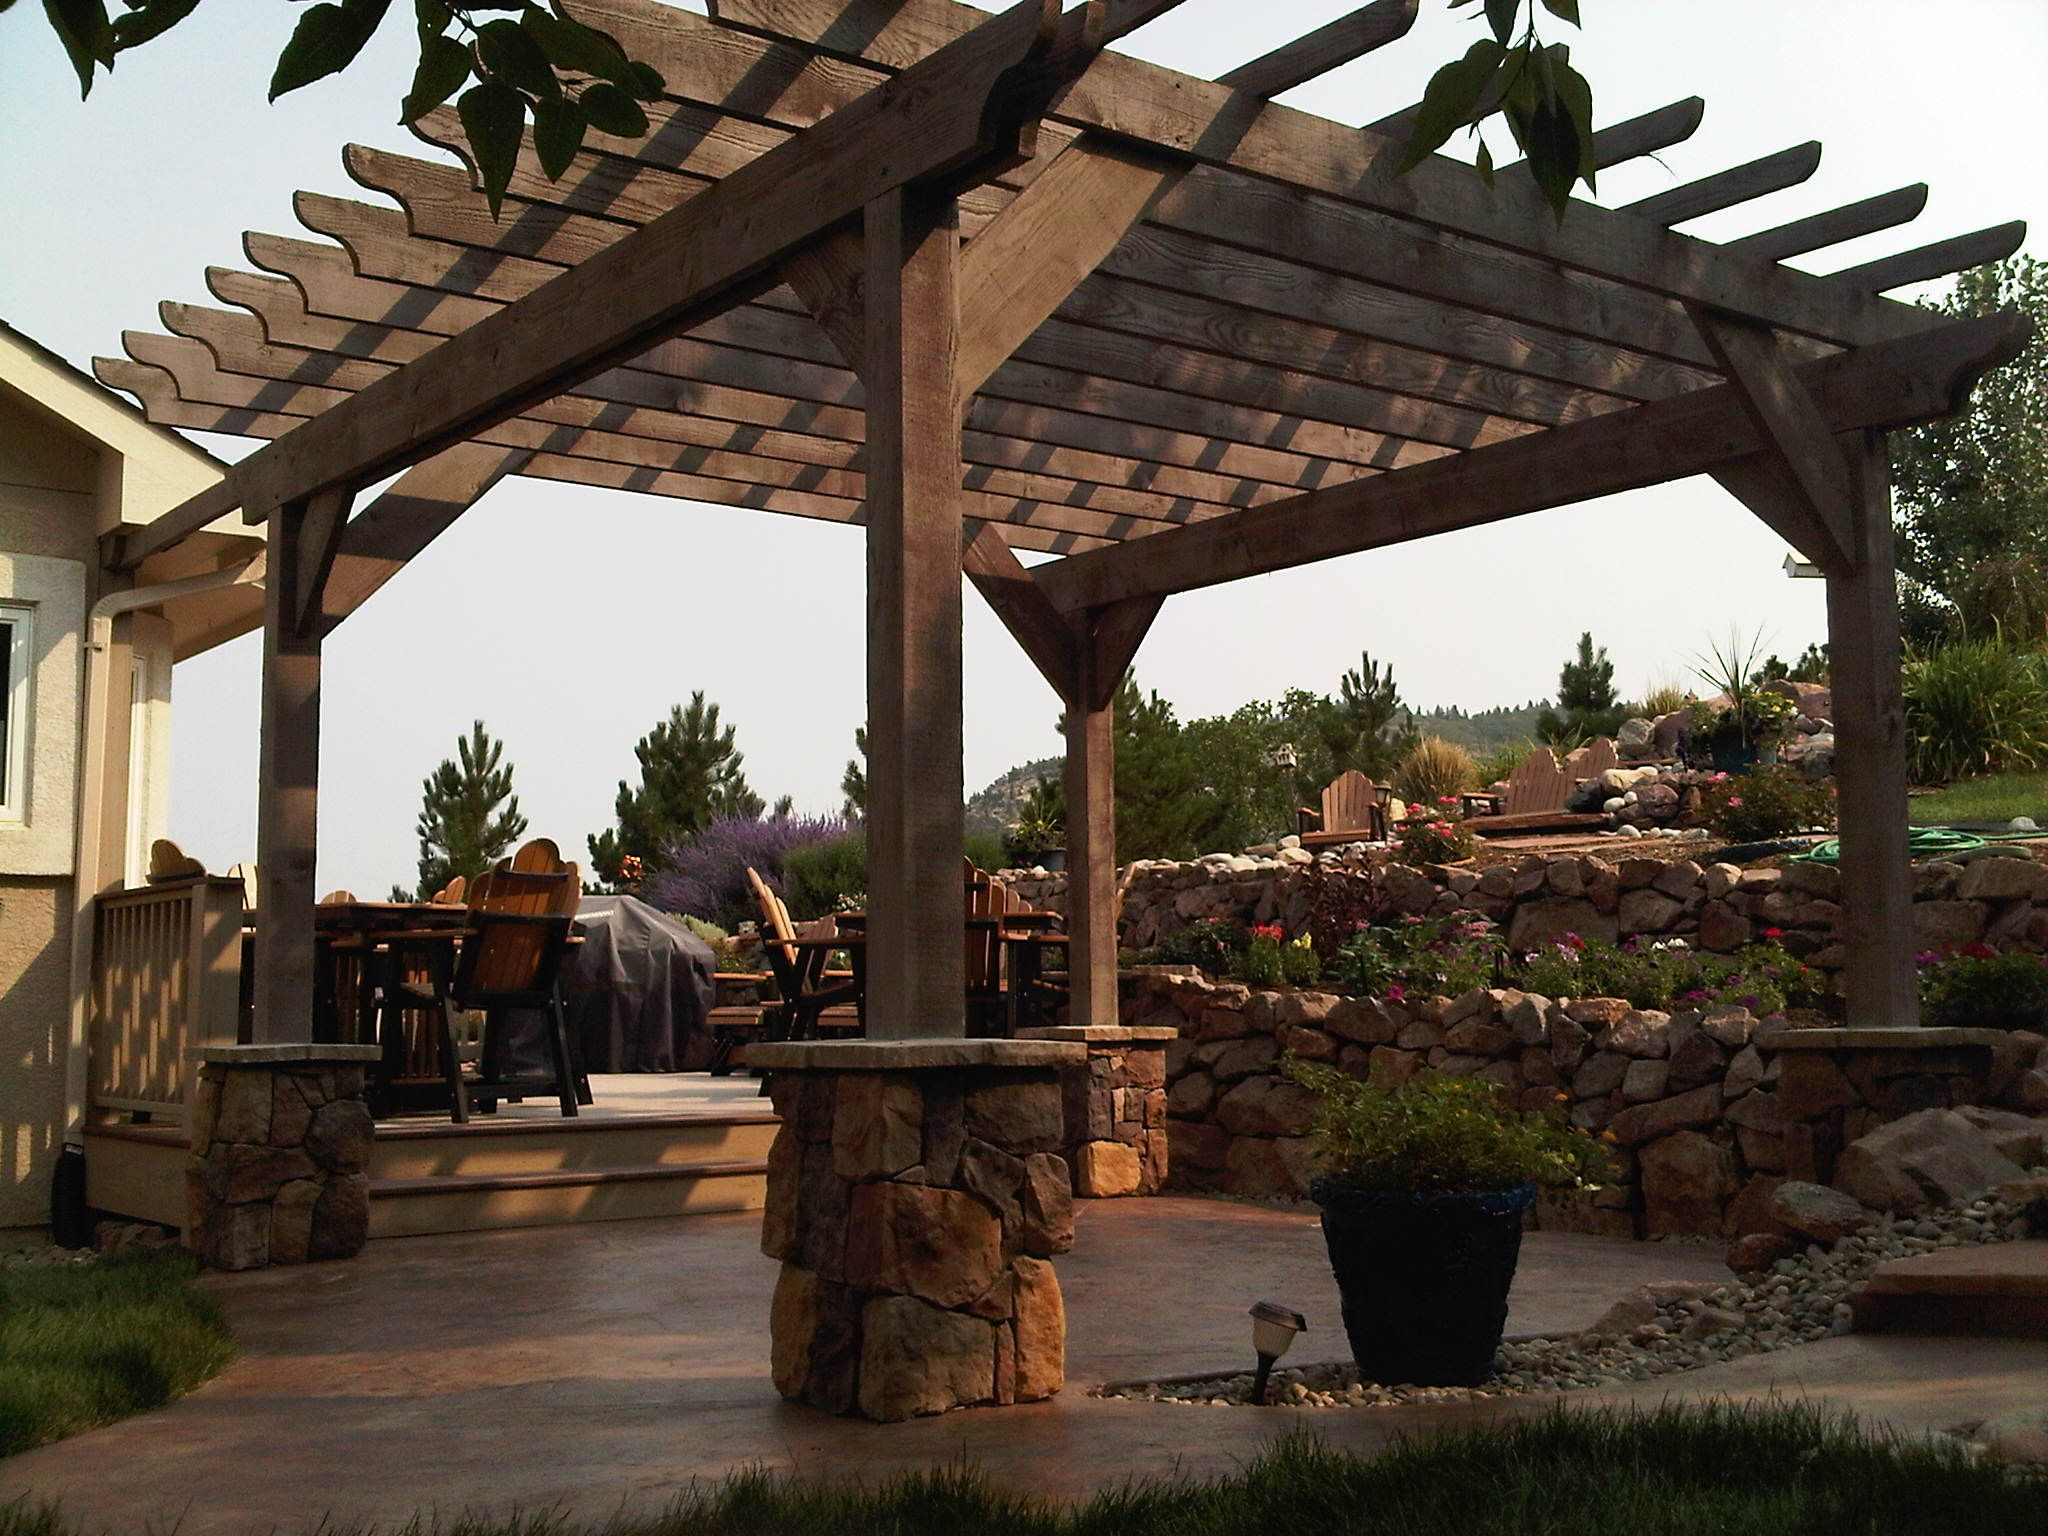 Rough Sawn Timber Pergola, Stone Veneer Post Bases, Stamped Concrete Patio,  Tiered Rock